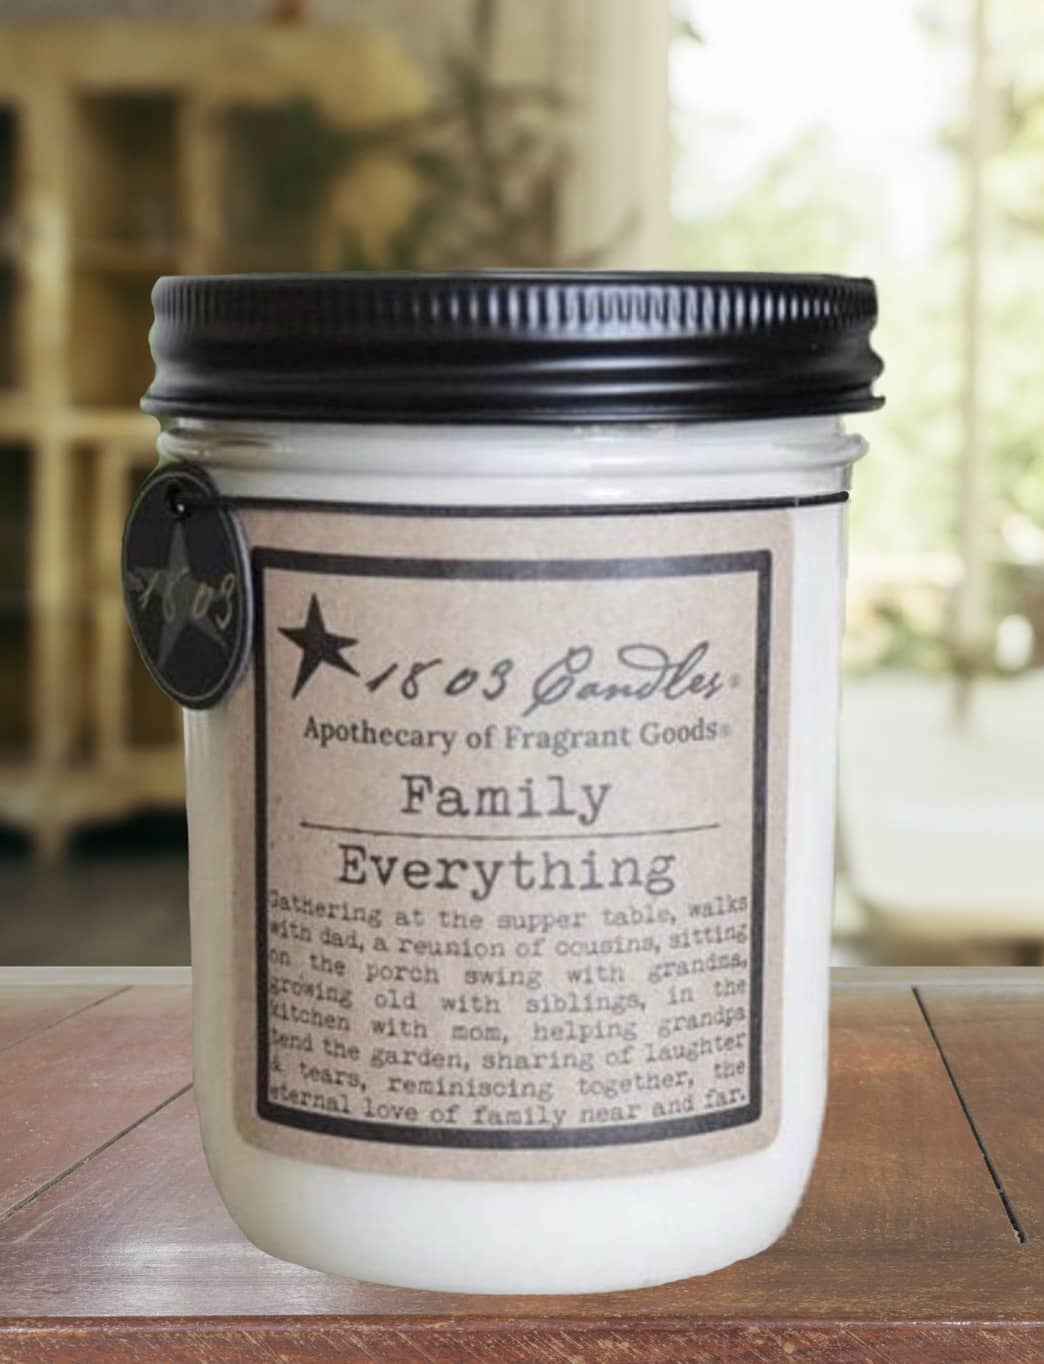 1803 Candles 1803 Family Everything Candle